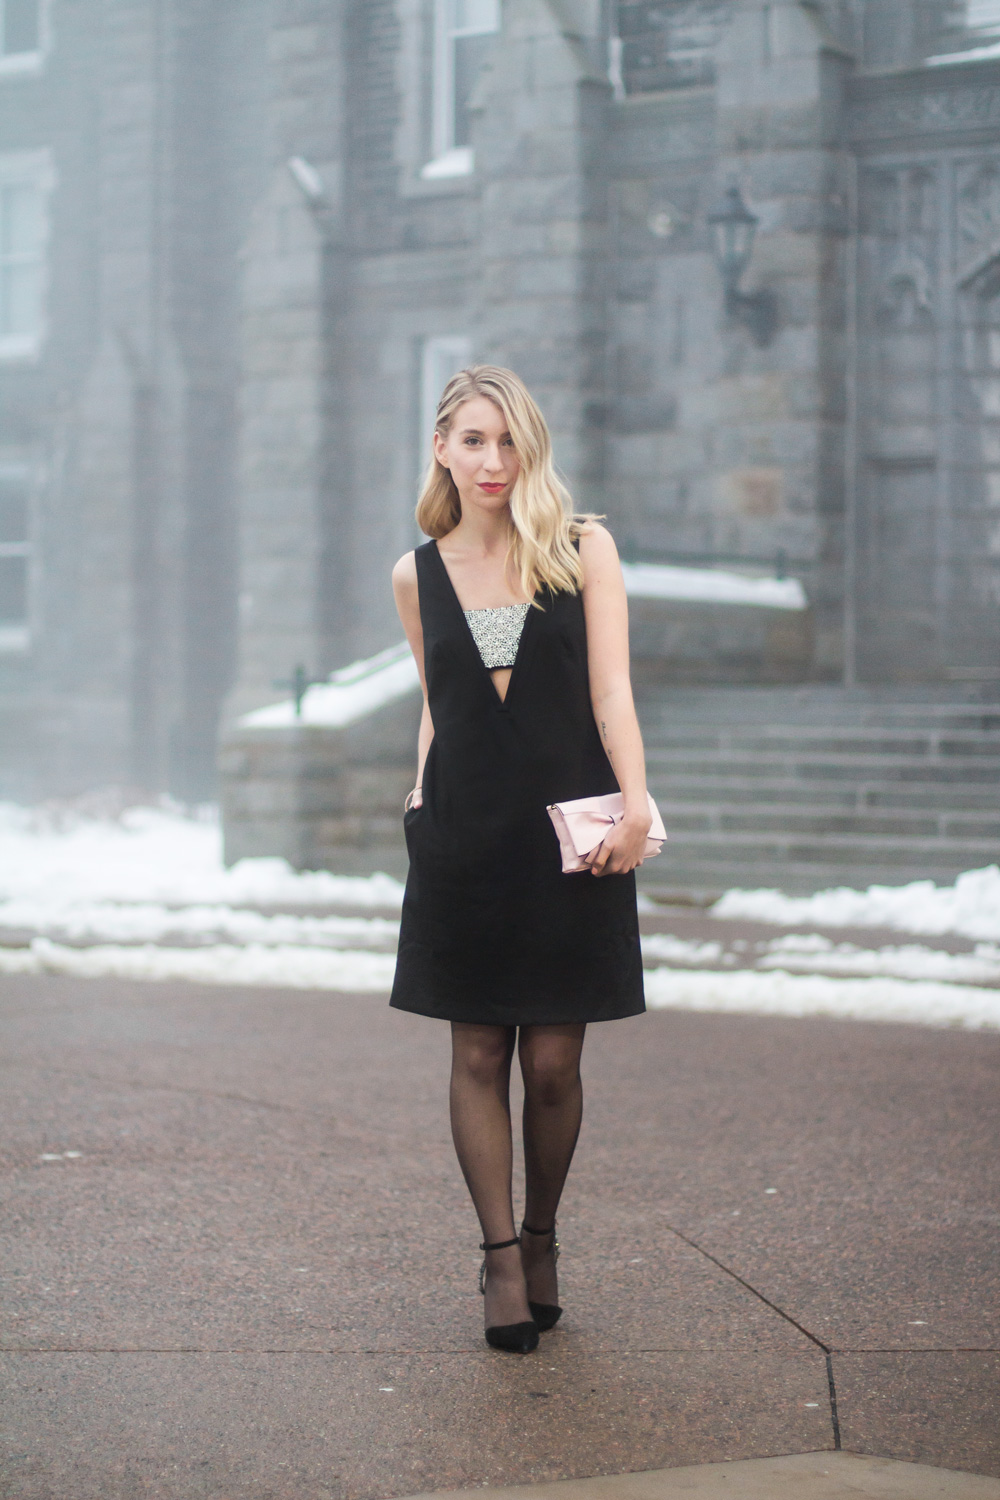 new_years_eve_outfit_ideas_3